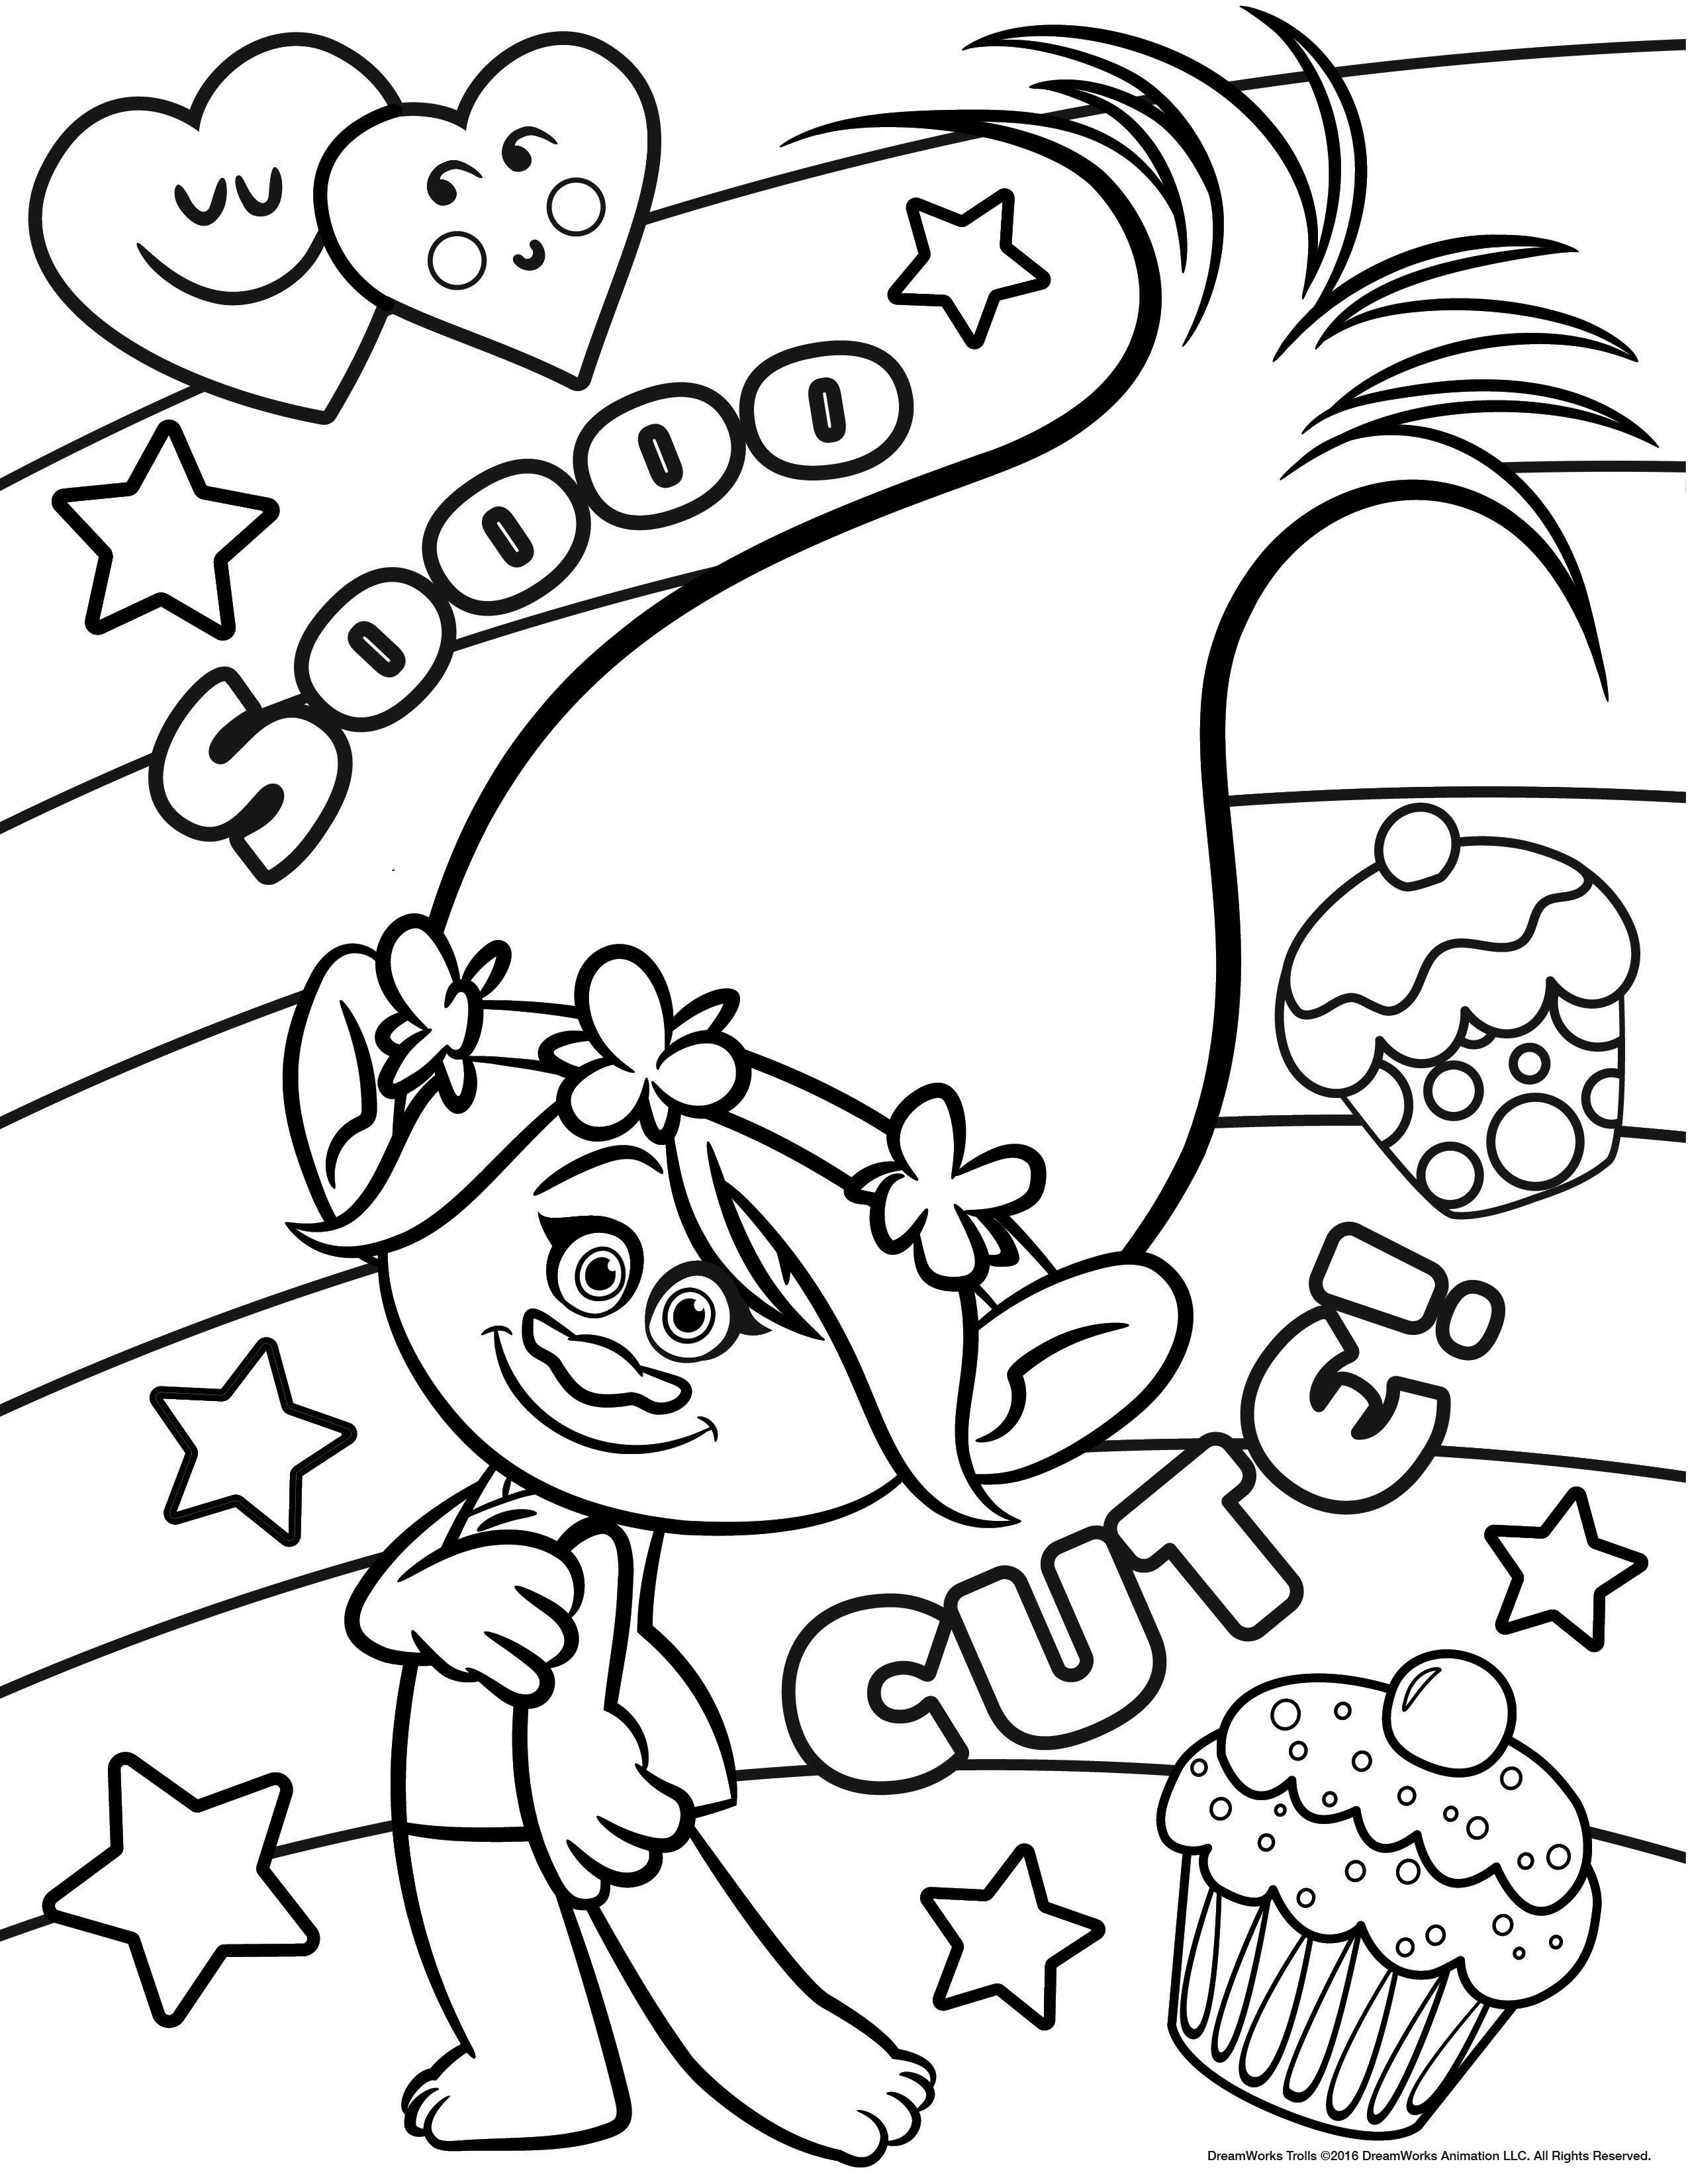 Trolls Coloring Pages Free Disney Coloring Pages Poppy Coloring